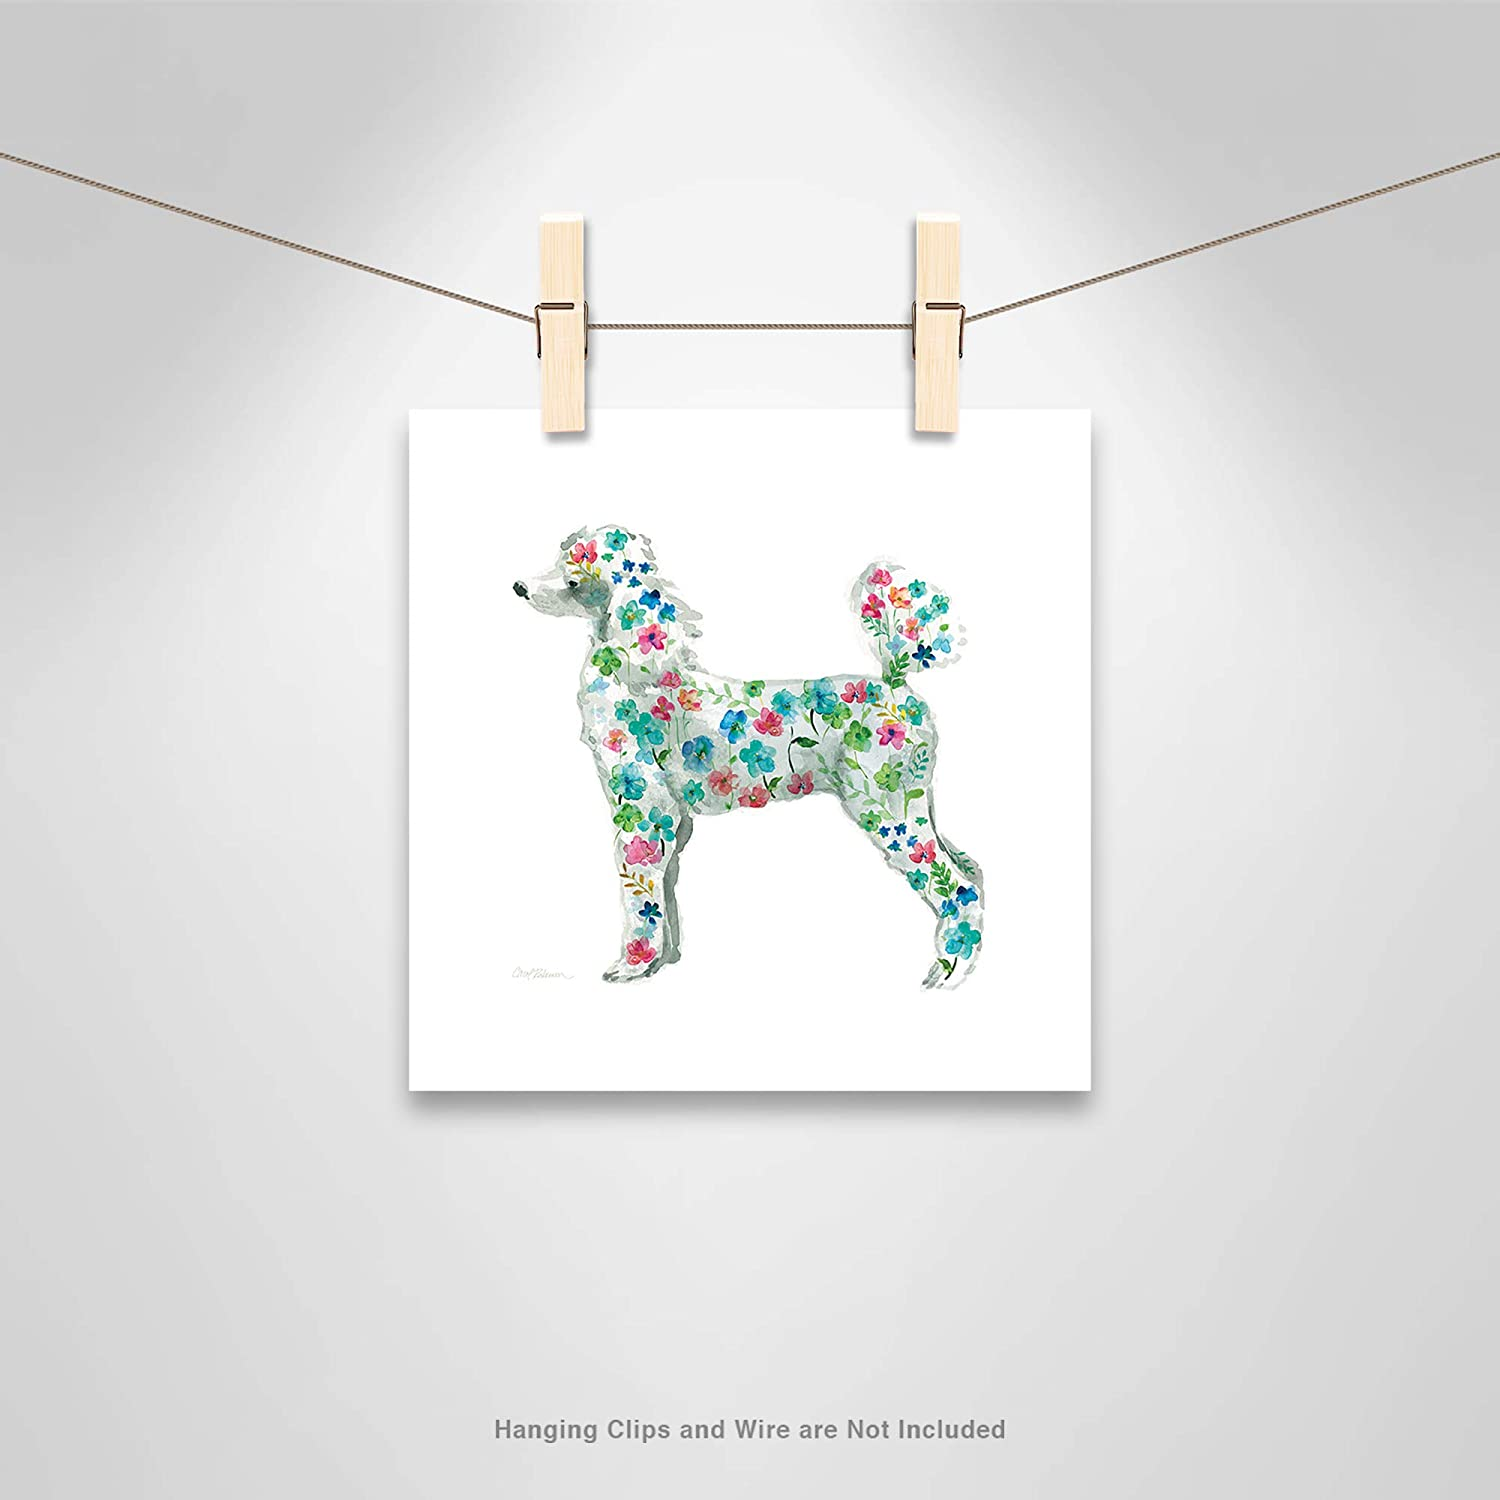 Casa Fine Arts Tapestry Poodle Cute Quirky Floral Animal House pet Dog Archival Watercolor Art Print 10 x 10 Multicolor